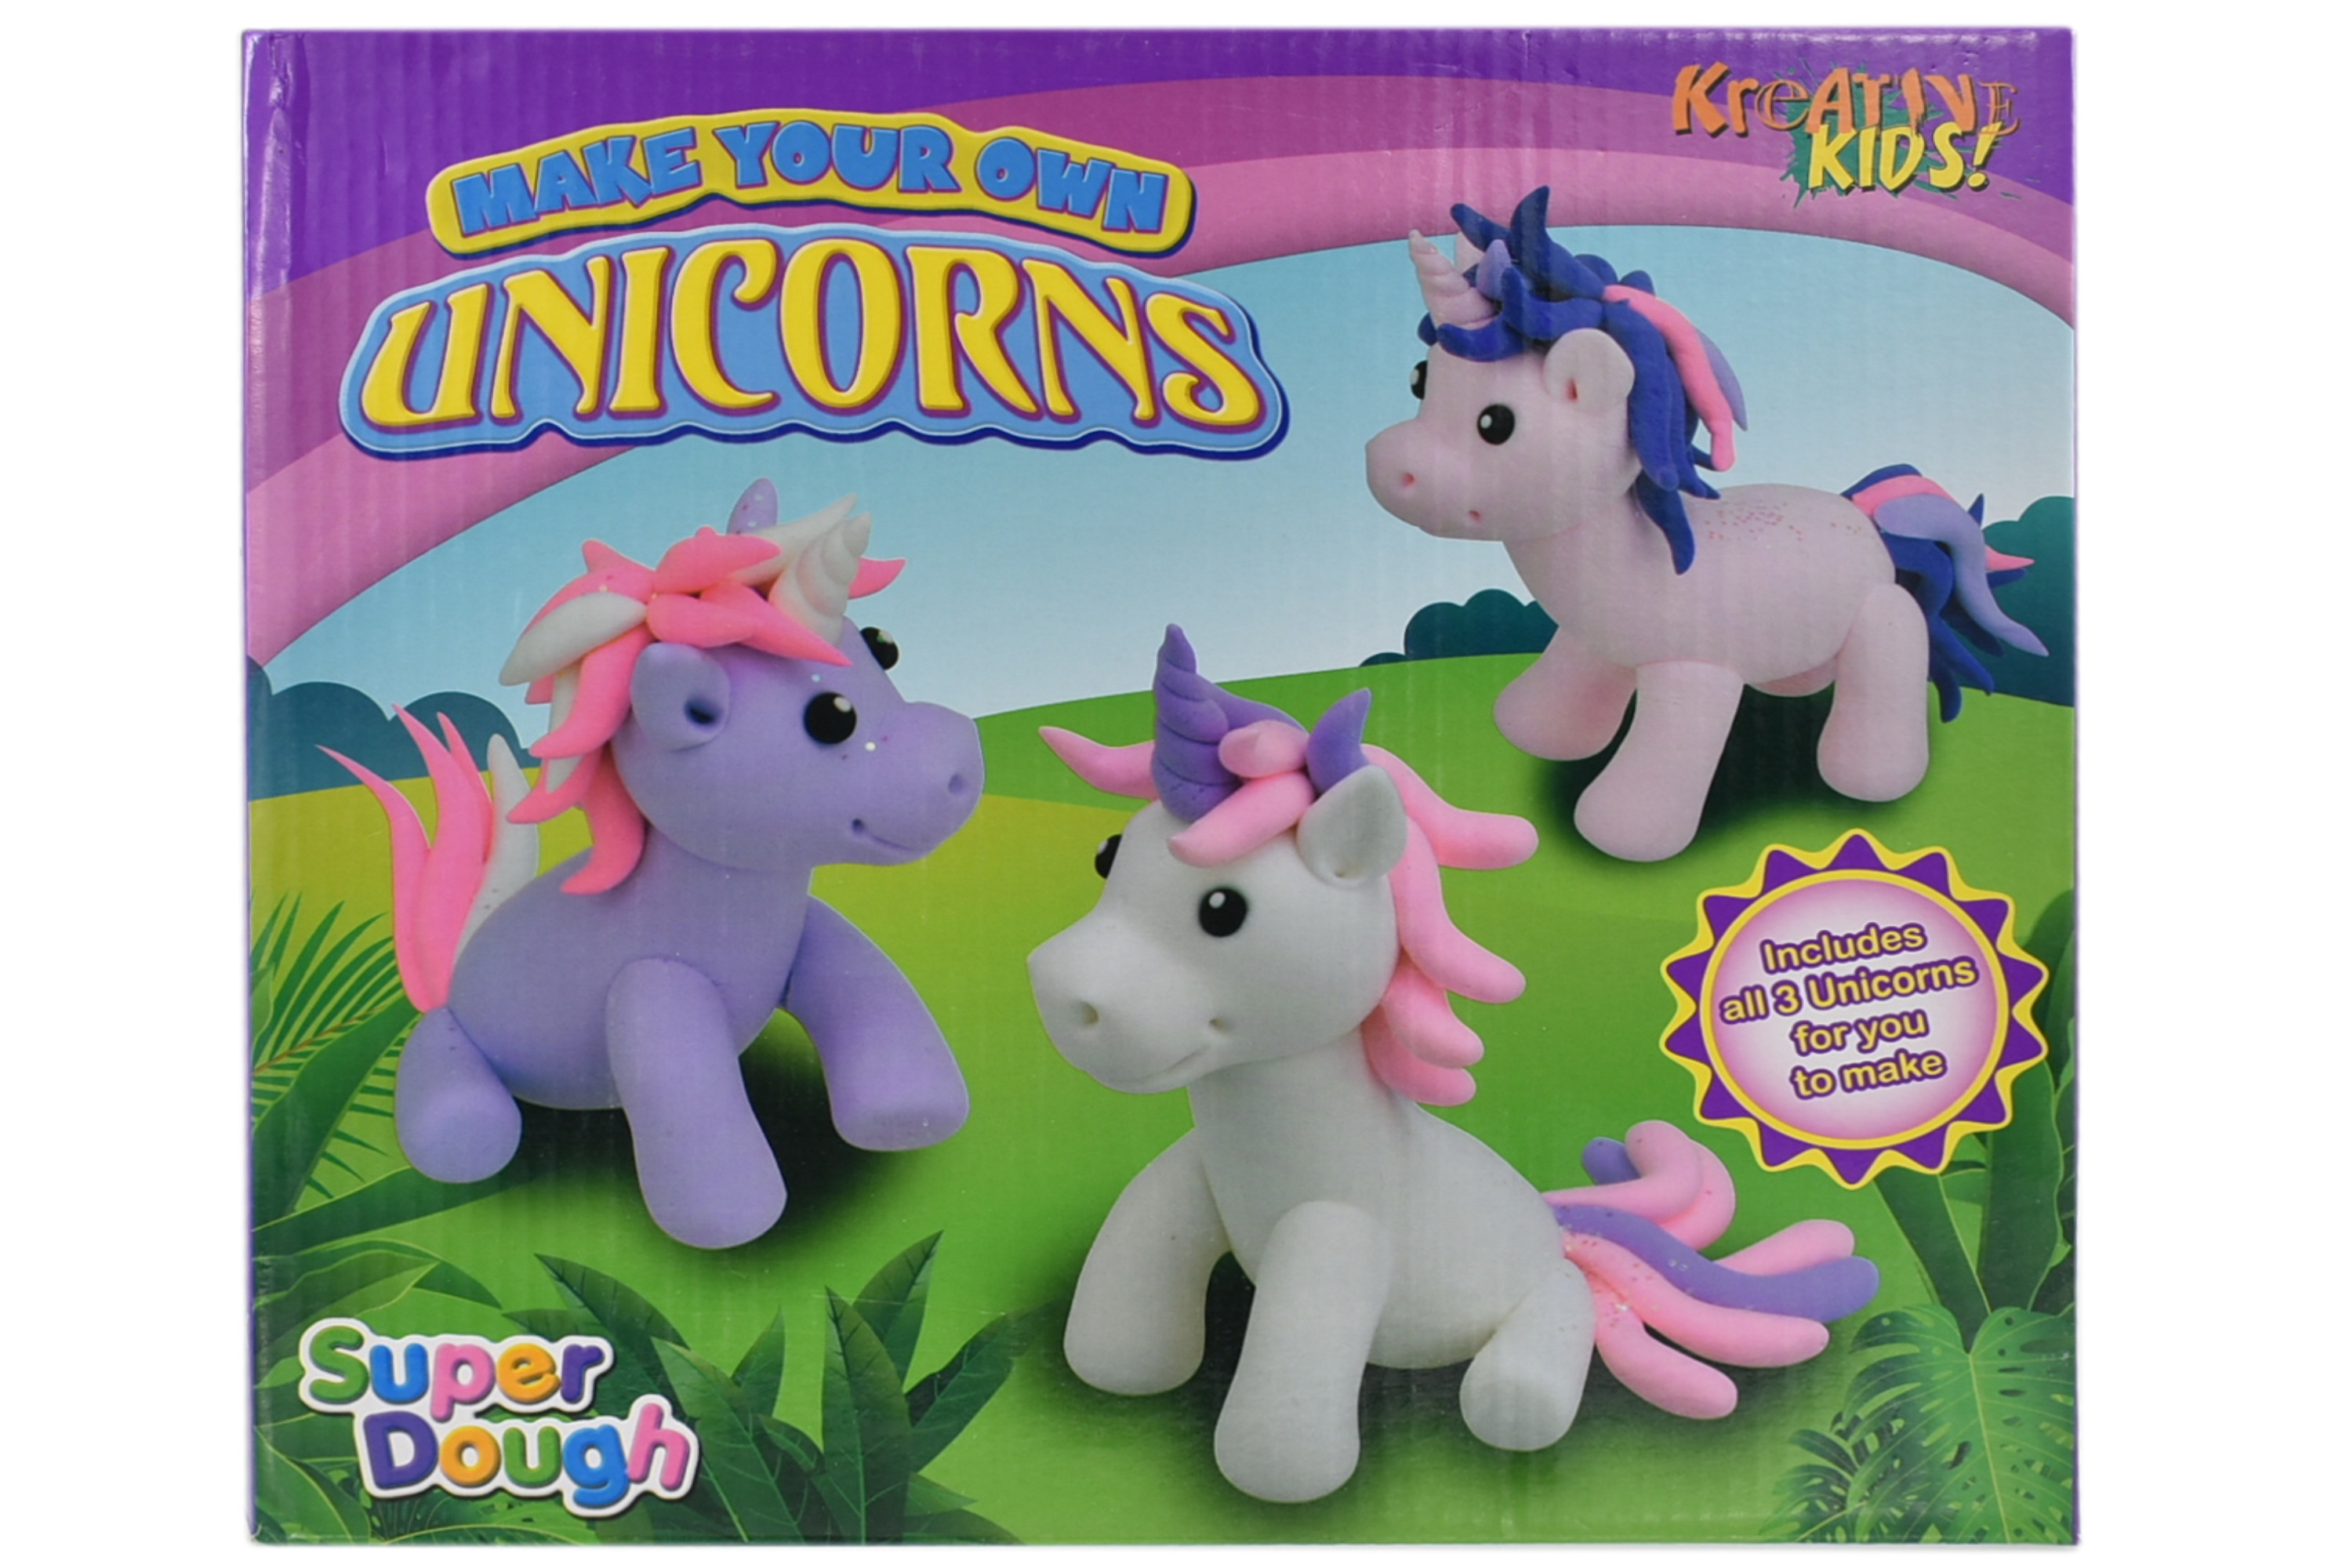 Super Dough - Make Your Own Unicorns 3pcs In Colour Box